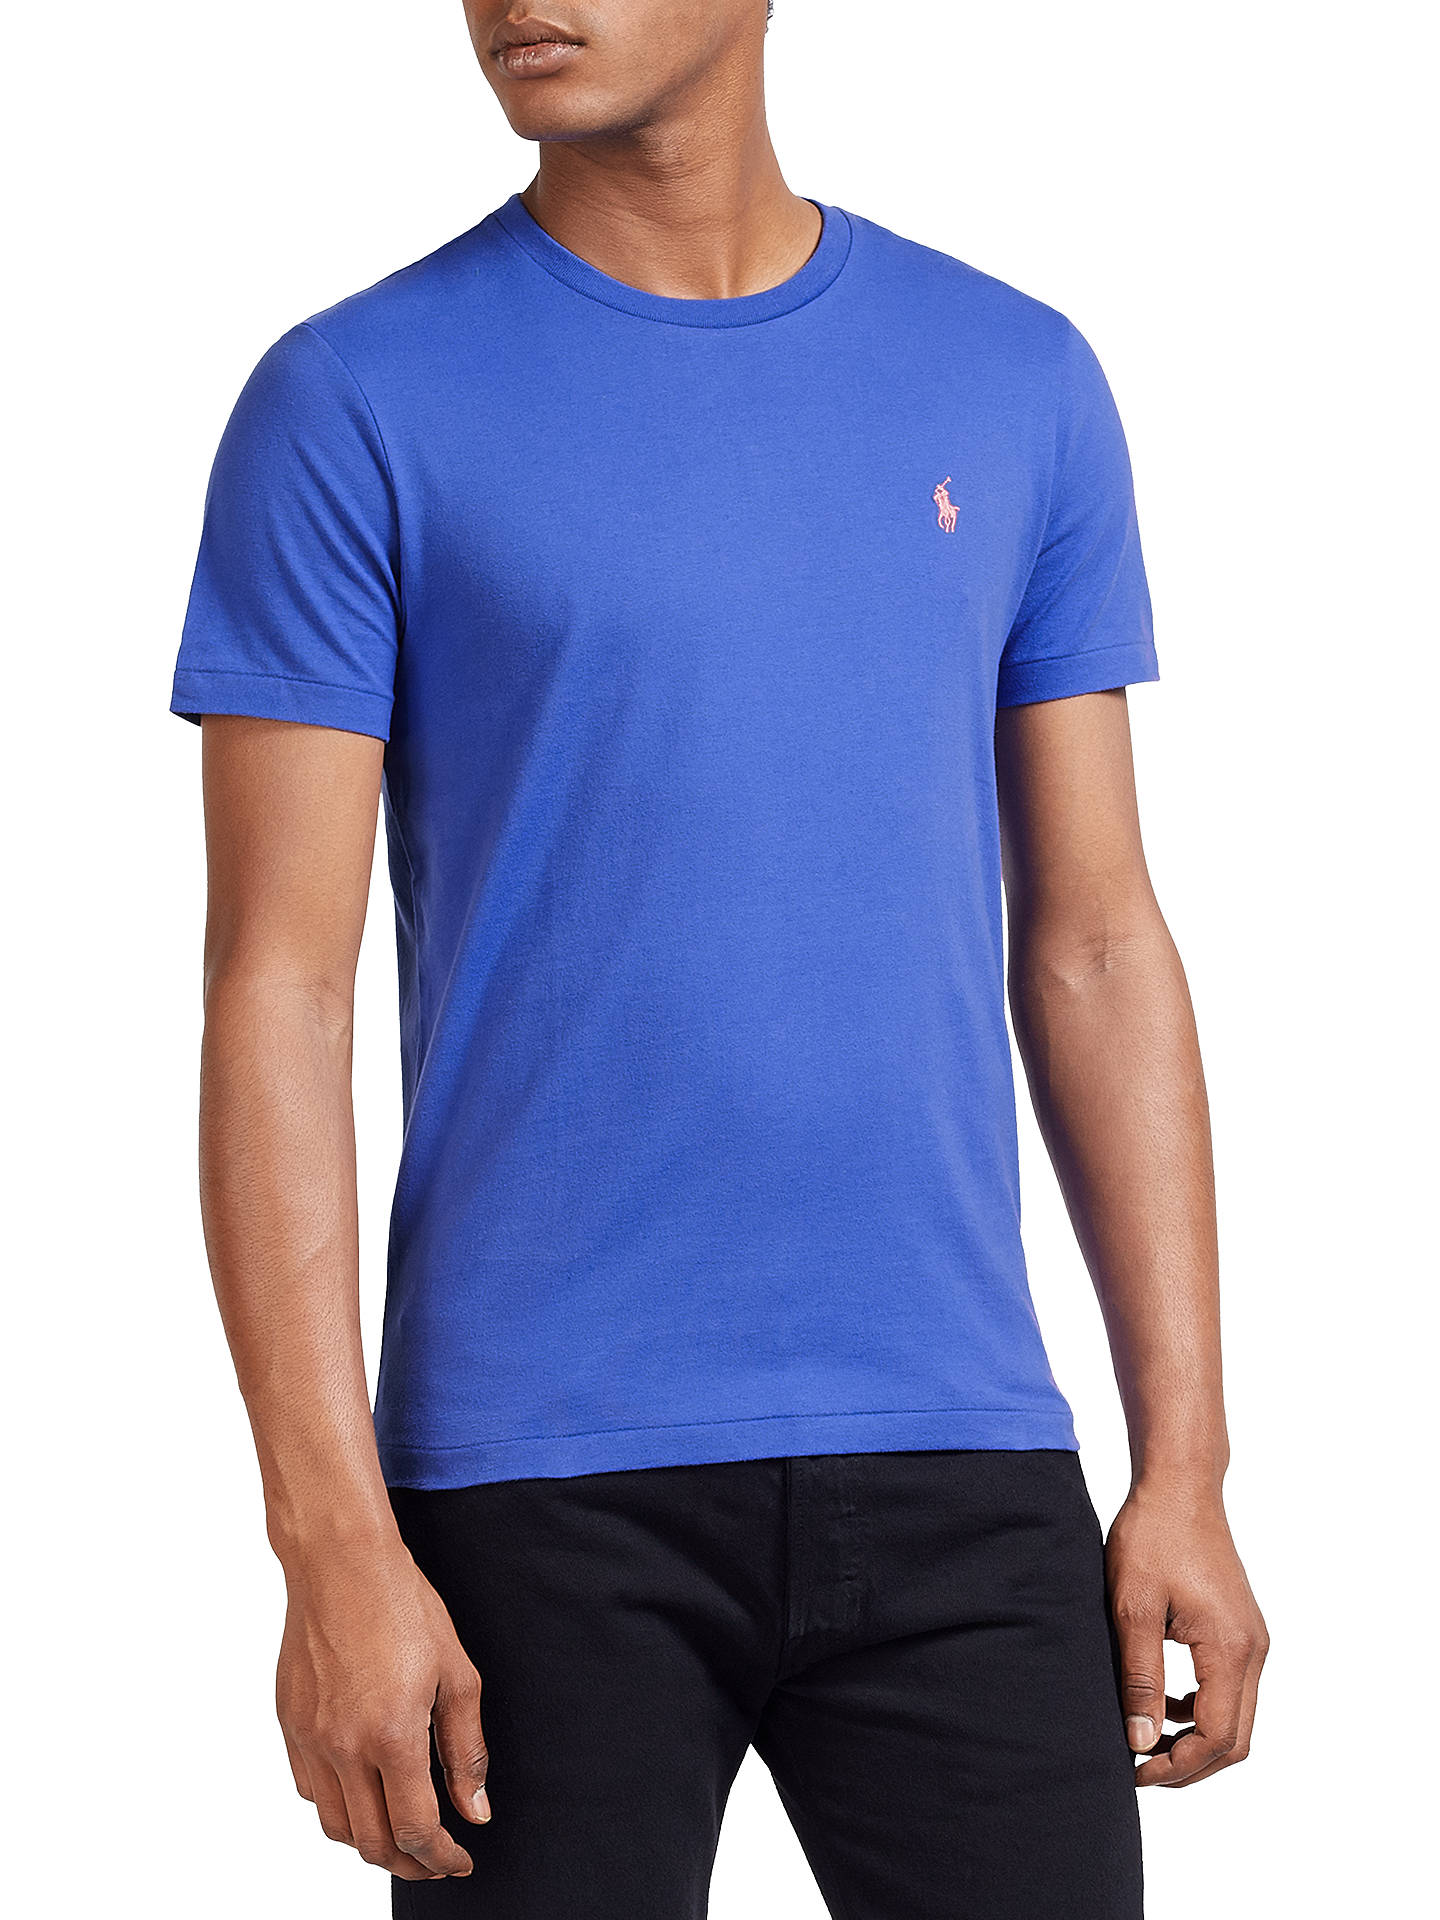 a1c18512 Buy Polo Ralph Lauren Short Sleeve Custom Fit Crew Neck T-Shirt, Collection  Royal ...